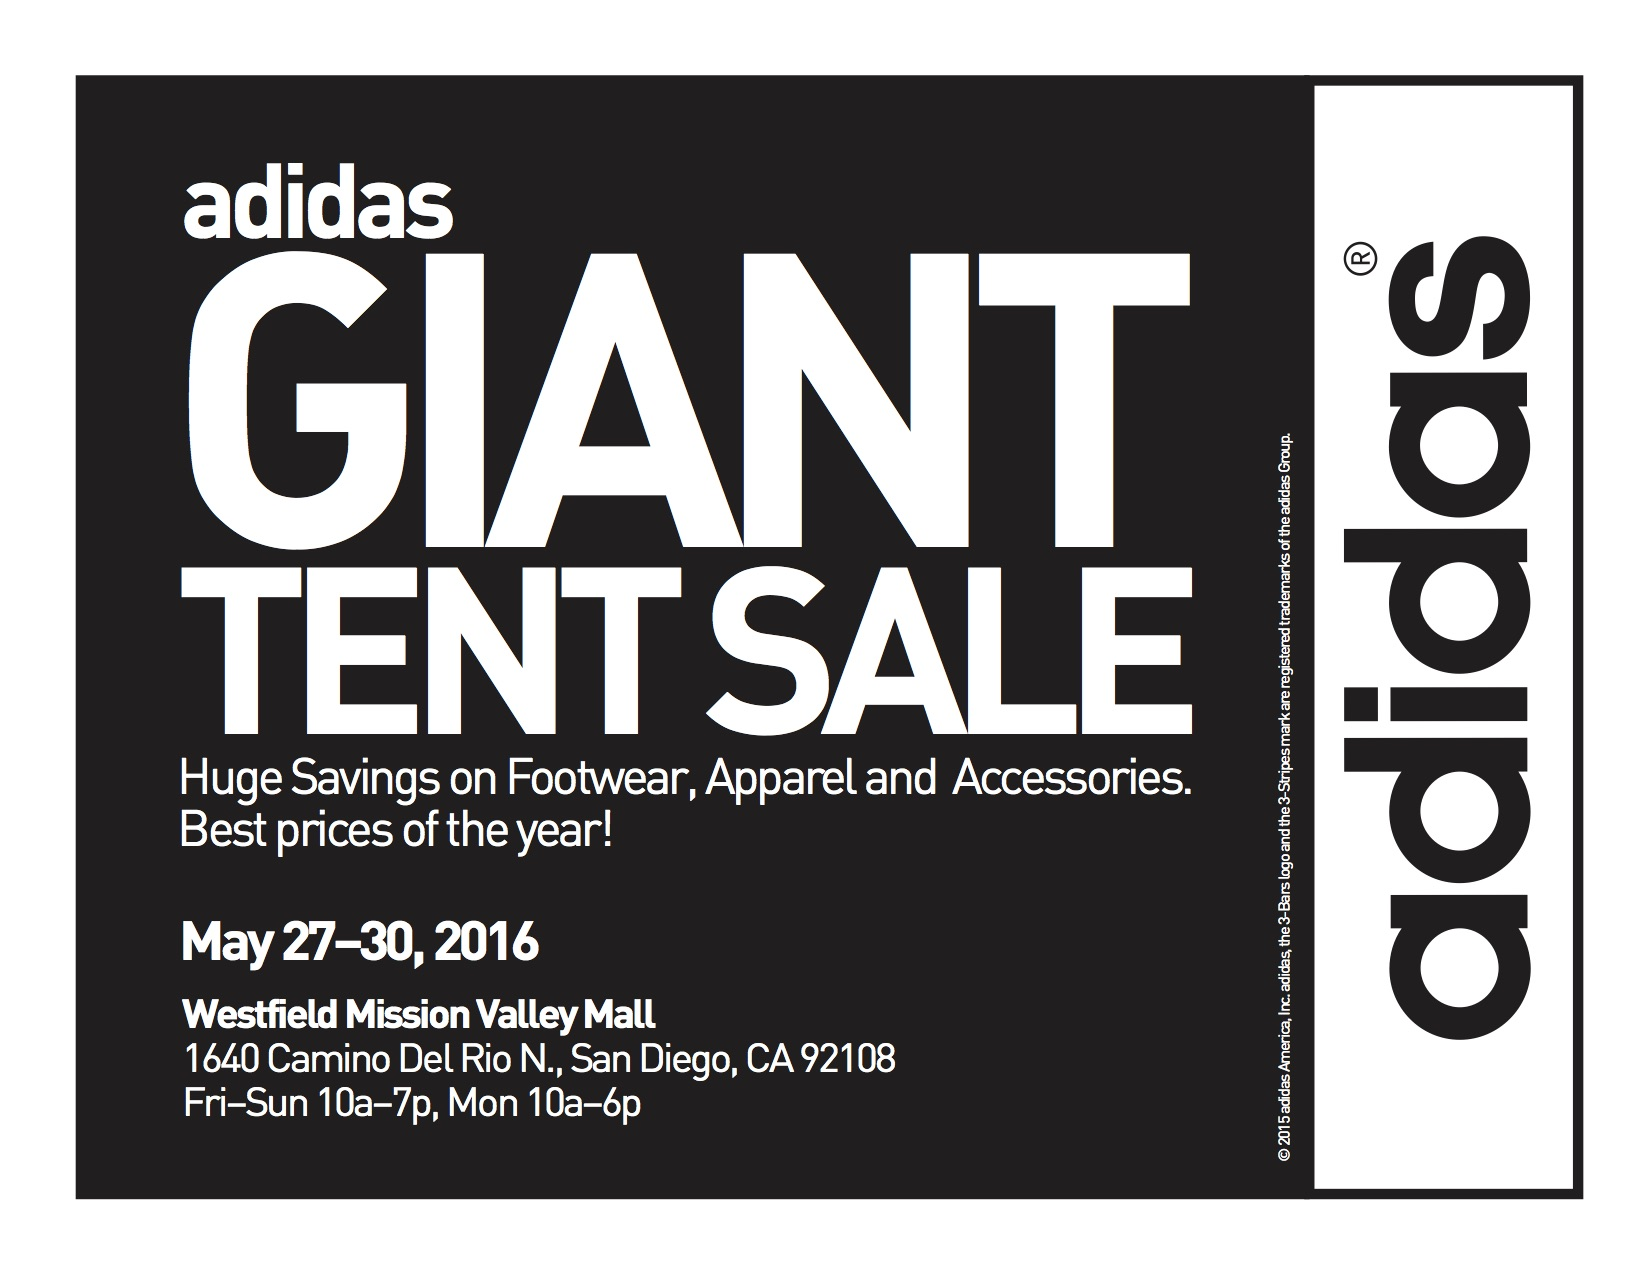 adidas tent sale mission valley 2017